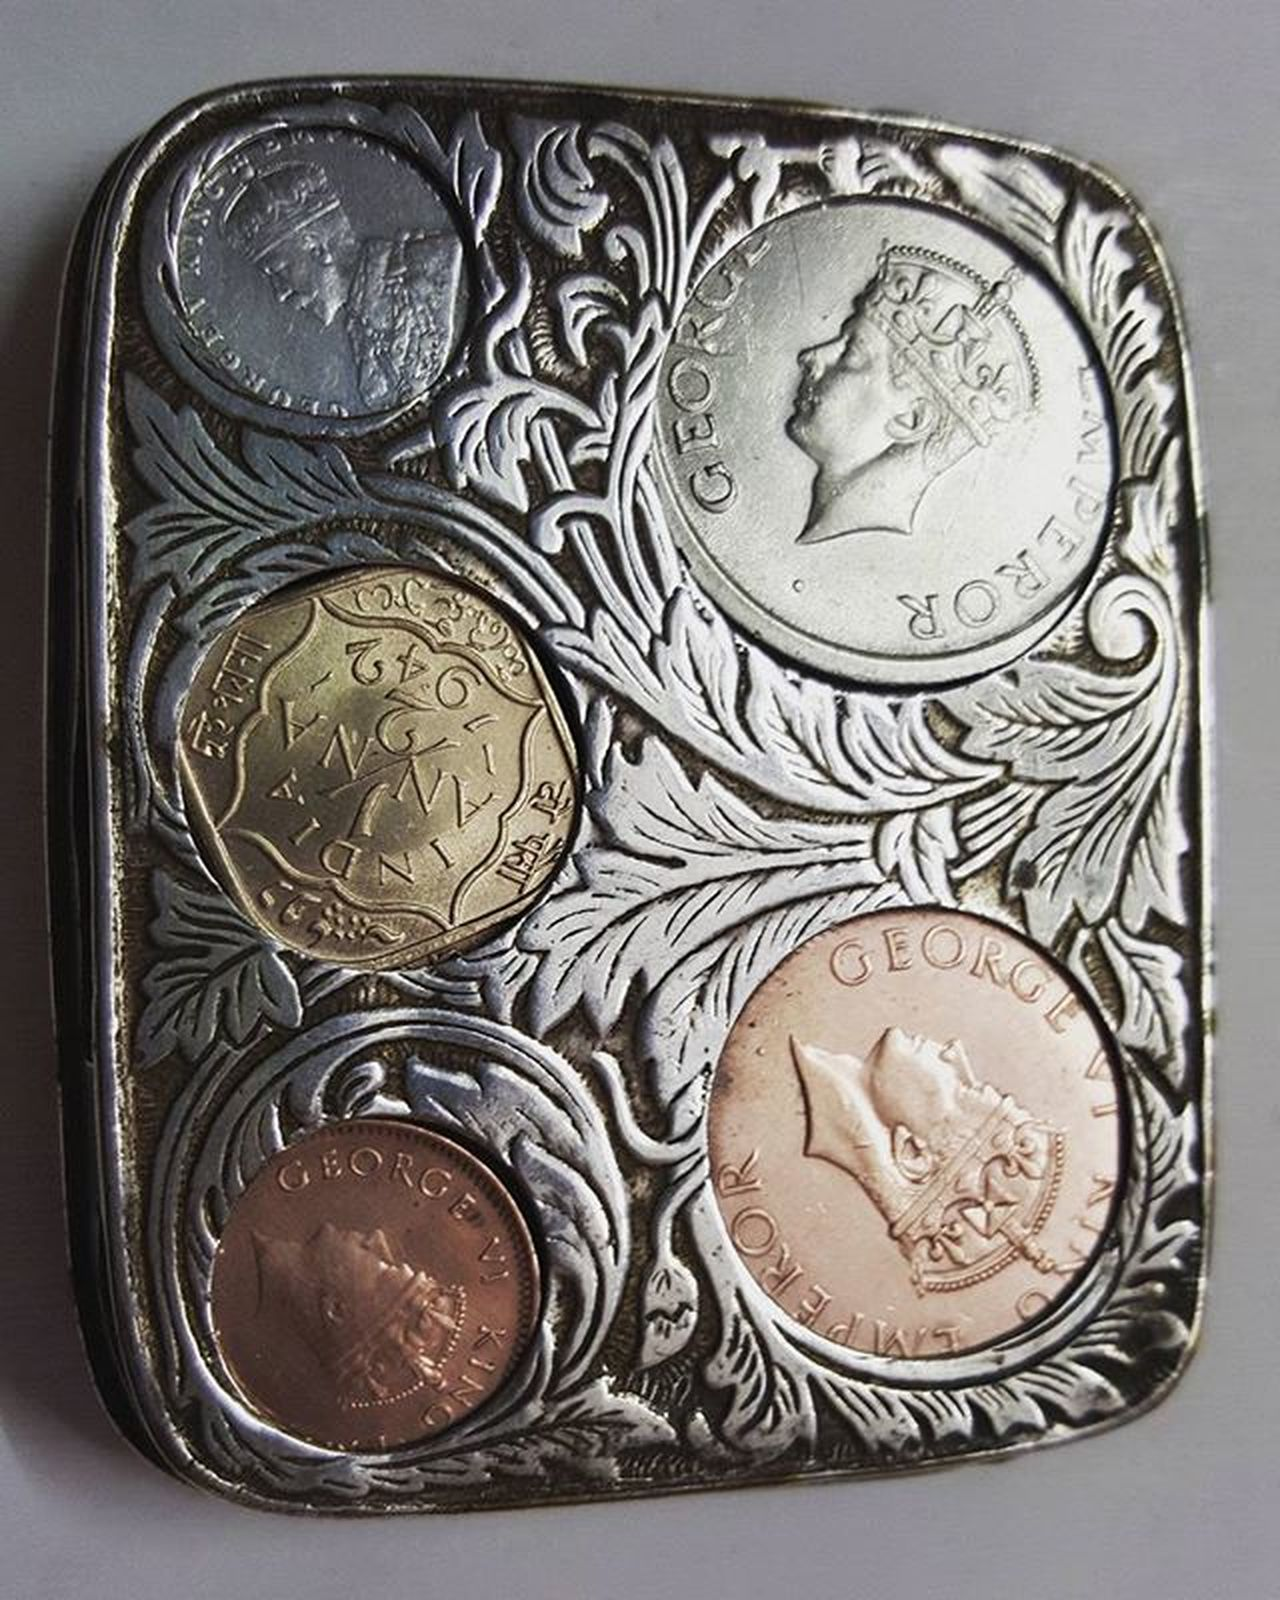 Oldindiancoins Britishemperor KingGeorge Before Indianindependence Goodolddays Coincollection Coincollector Coinbox Picoftheday Instapic Instalike Instafollowme Instafollowers Instafollow Igers Madeingermany Silverbox Metal Valuable TBT  Money